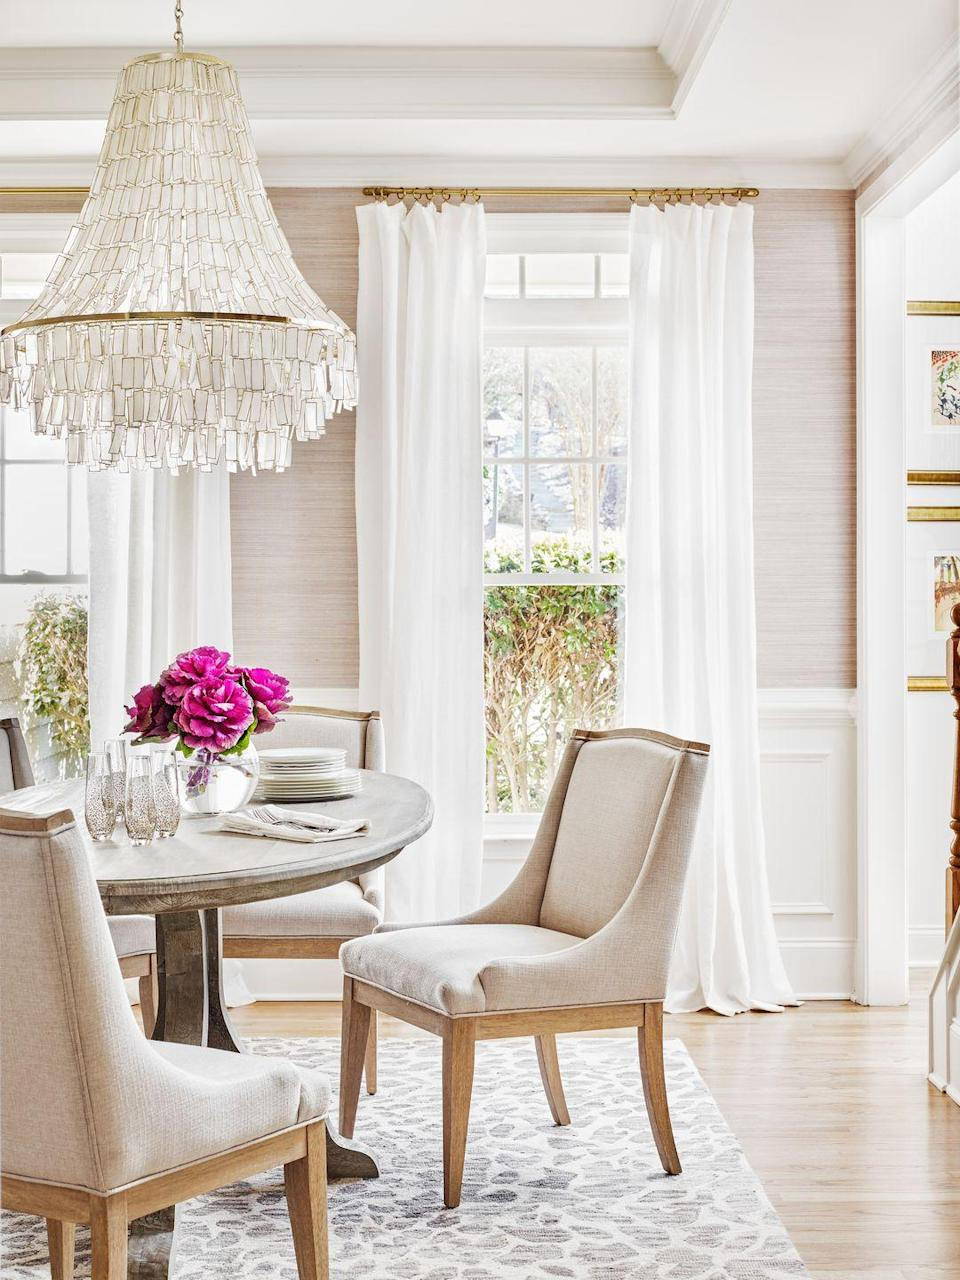 """<p>""""Grasscloth is one of my favorite materials for a nuanced and organic yet tailored feel,"""" says Atlanta-based designer Theresa Ory. """"Grasscloth is quite versatile—I've personally used it in dining rooms and powder rooms, as well as a lining for built-ins and above paneling in hallways."""" We love this creamy grasscloth she selected for this natural light-drenched dining room.</p><p>Ory's pro tip: """"You can find grasscloth in many colors, finishes and weaves, which allows for flexibility of use. Thibault even has a vinyl version that is wipeable and very bathroom friendly.""""<br></p>"""